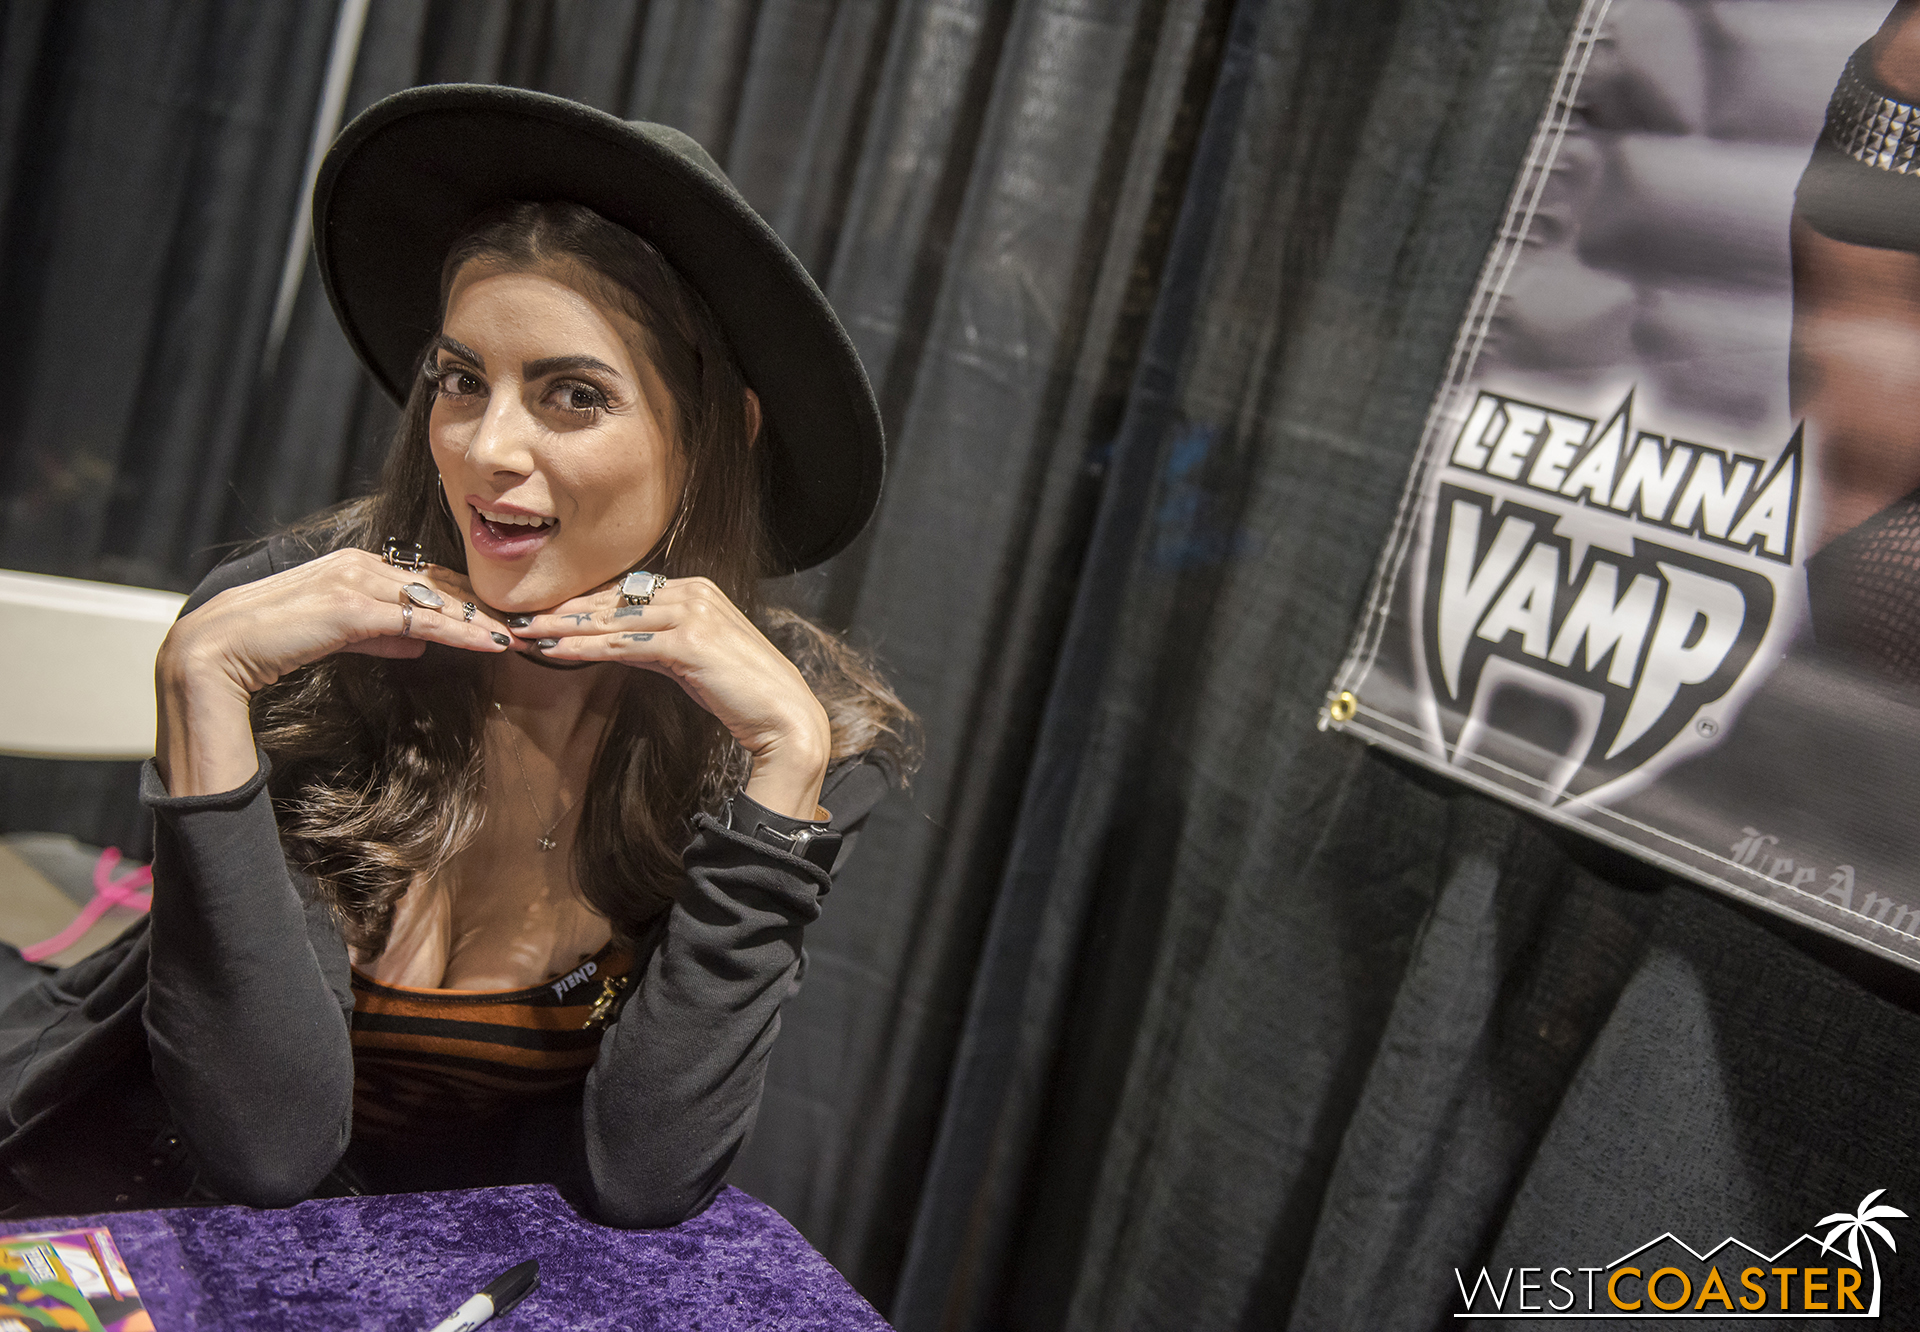 Actress and cosplayer Leeanna Vamp had a booth all weekend sell merchandise and meet fans.